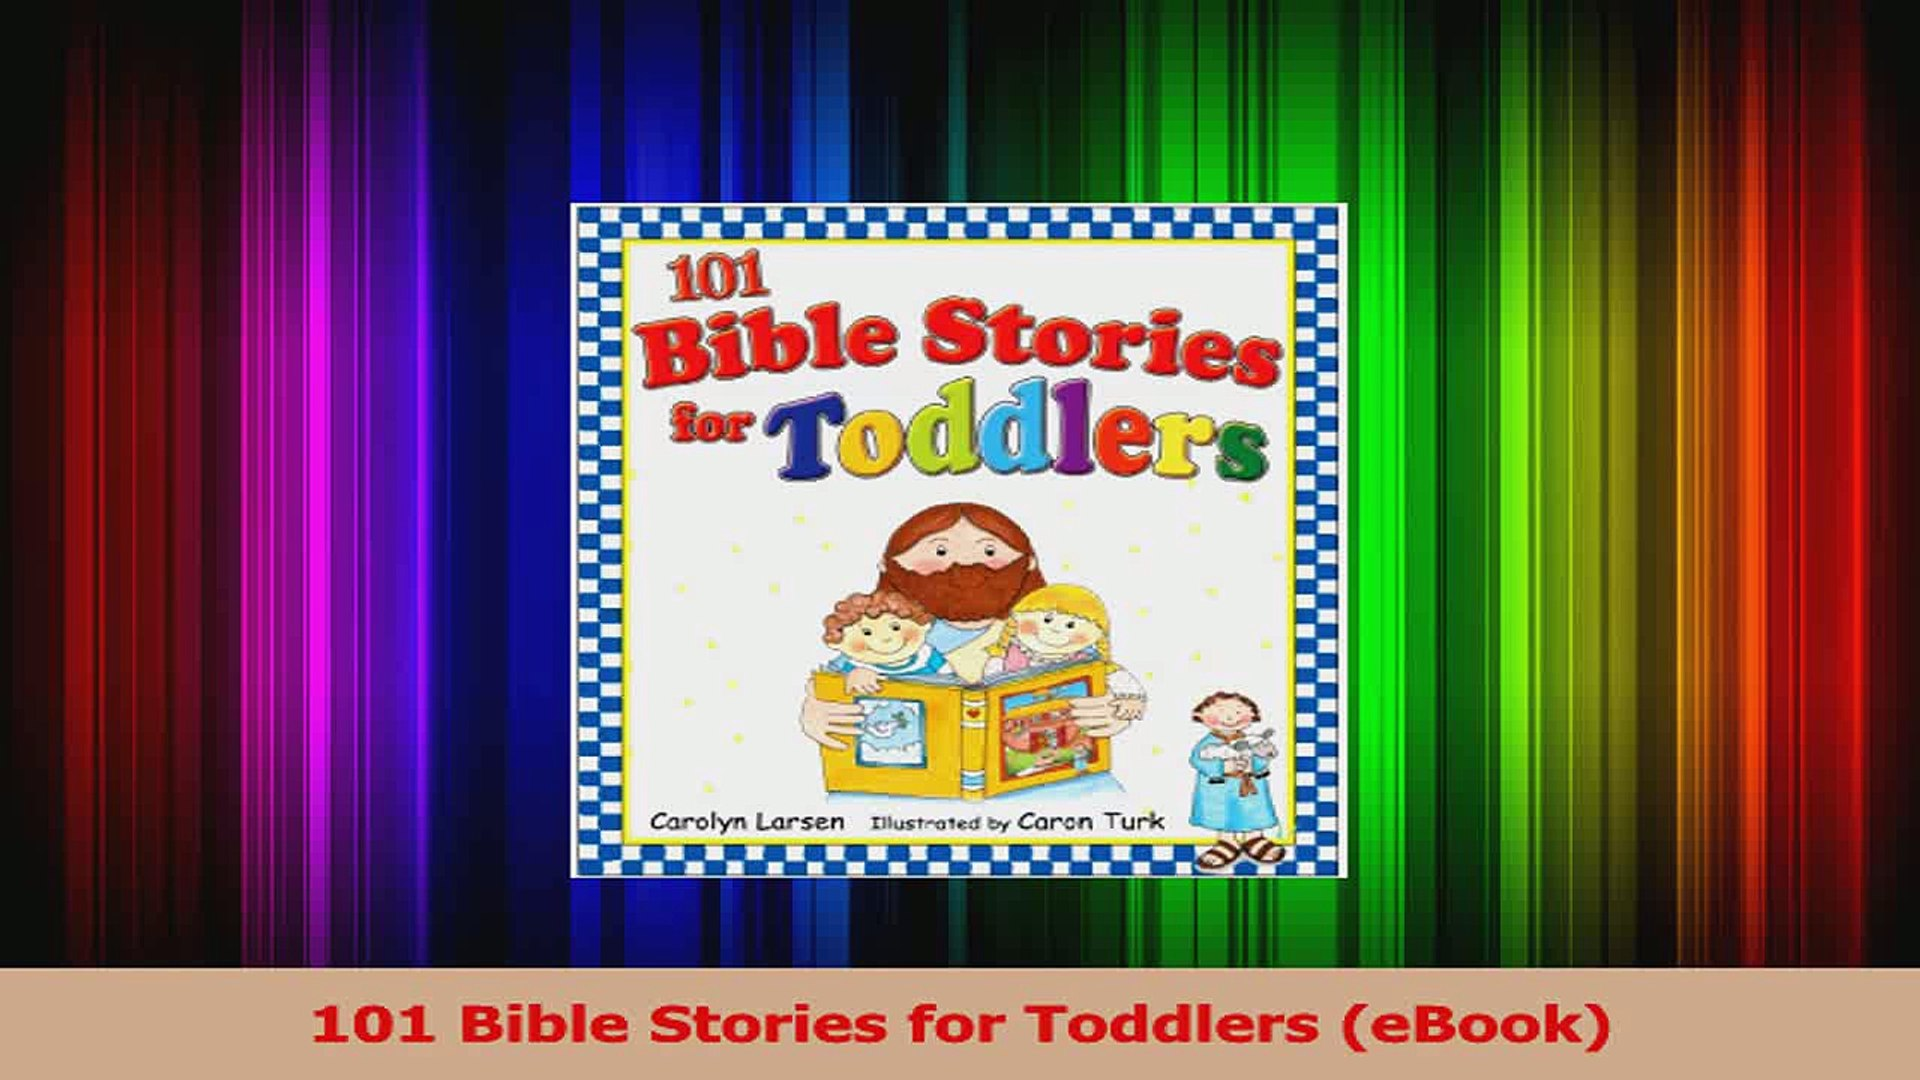 101 Bible Stories for Toddlers eBook Read Online